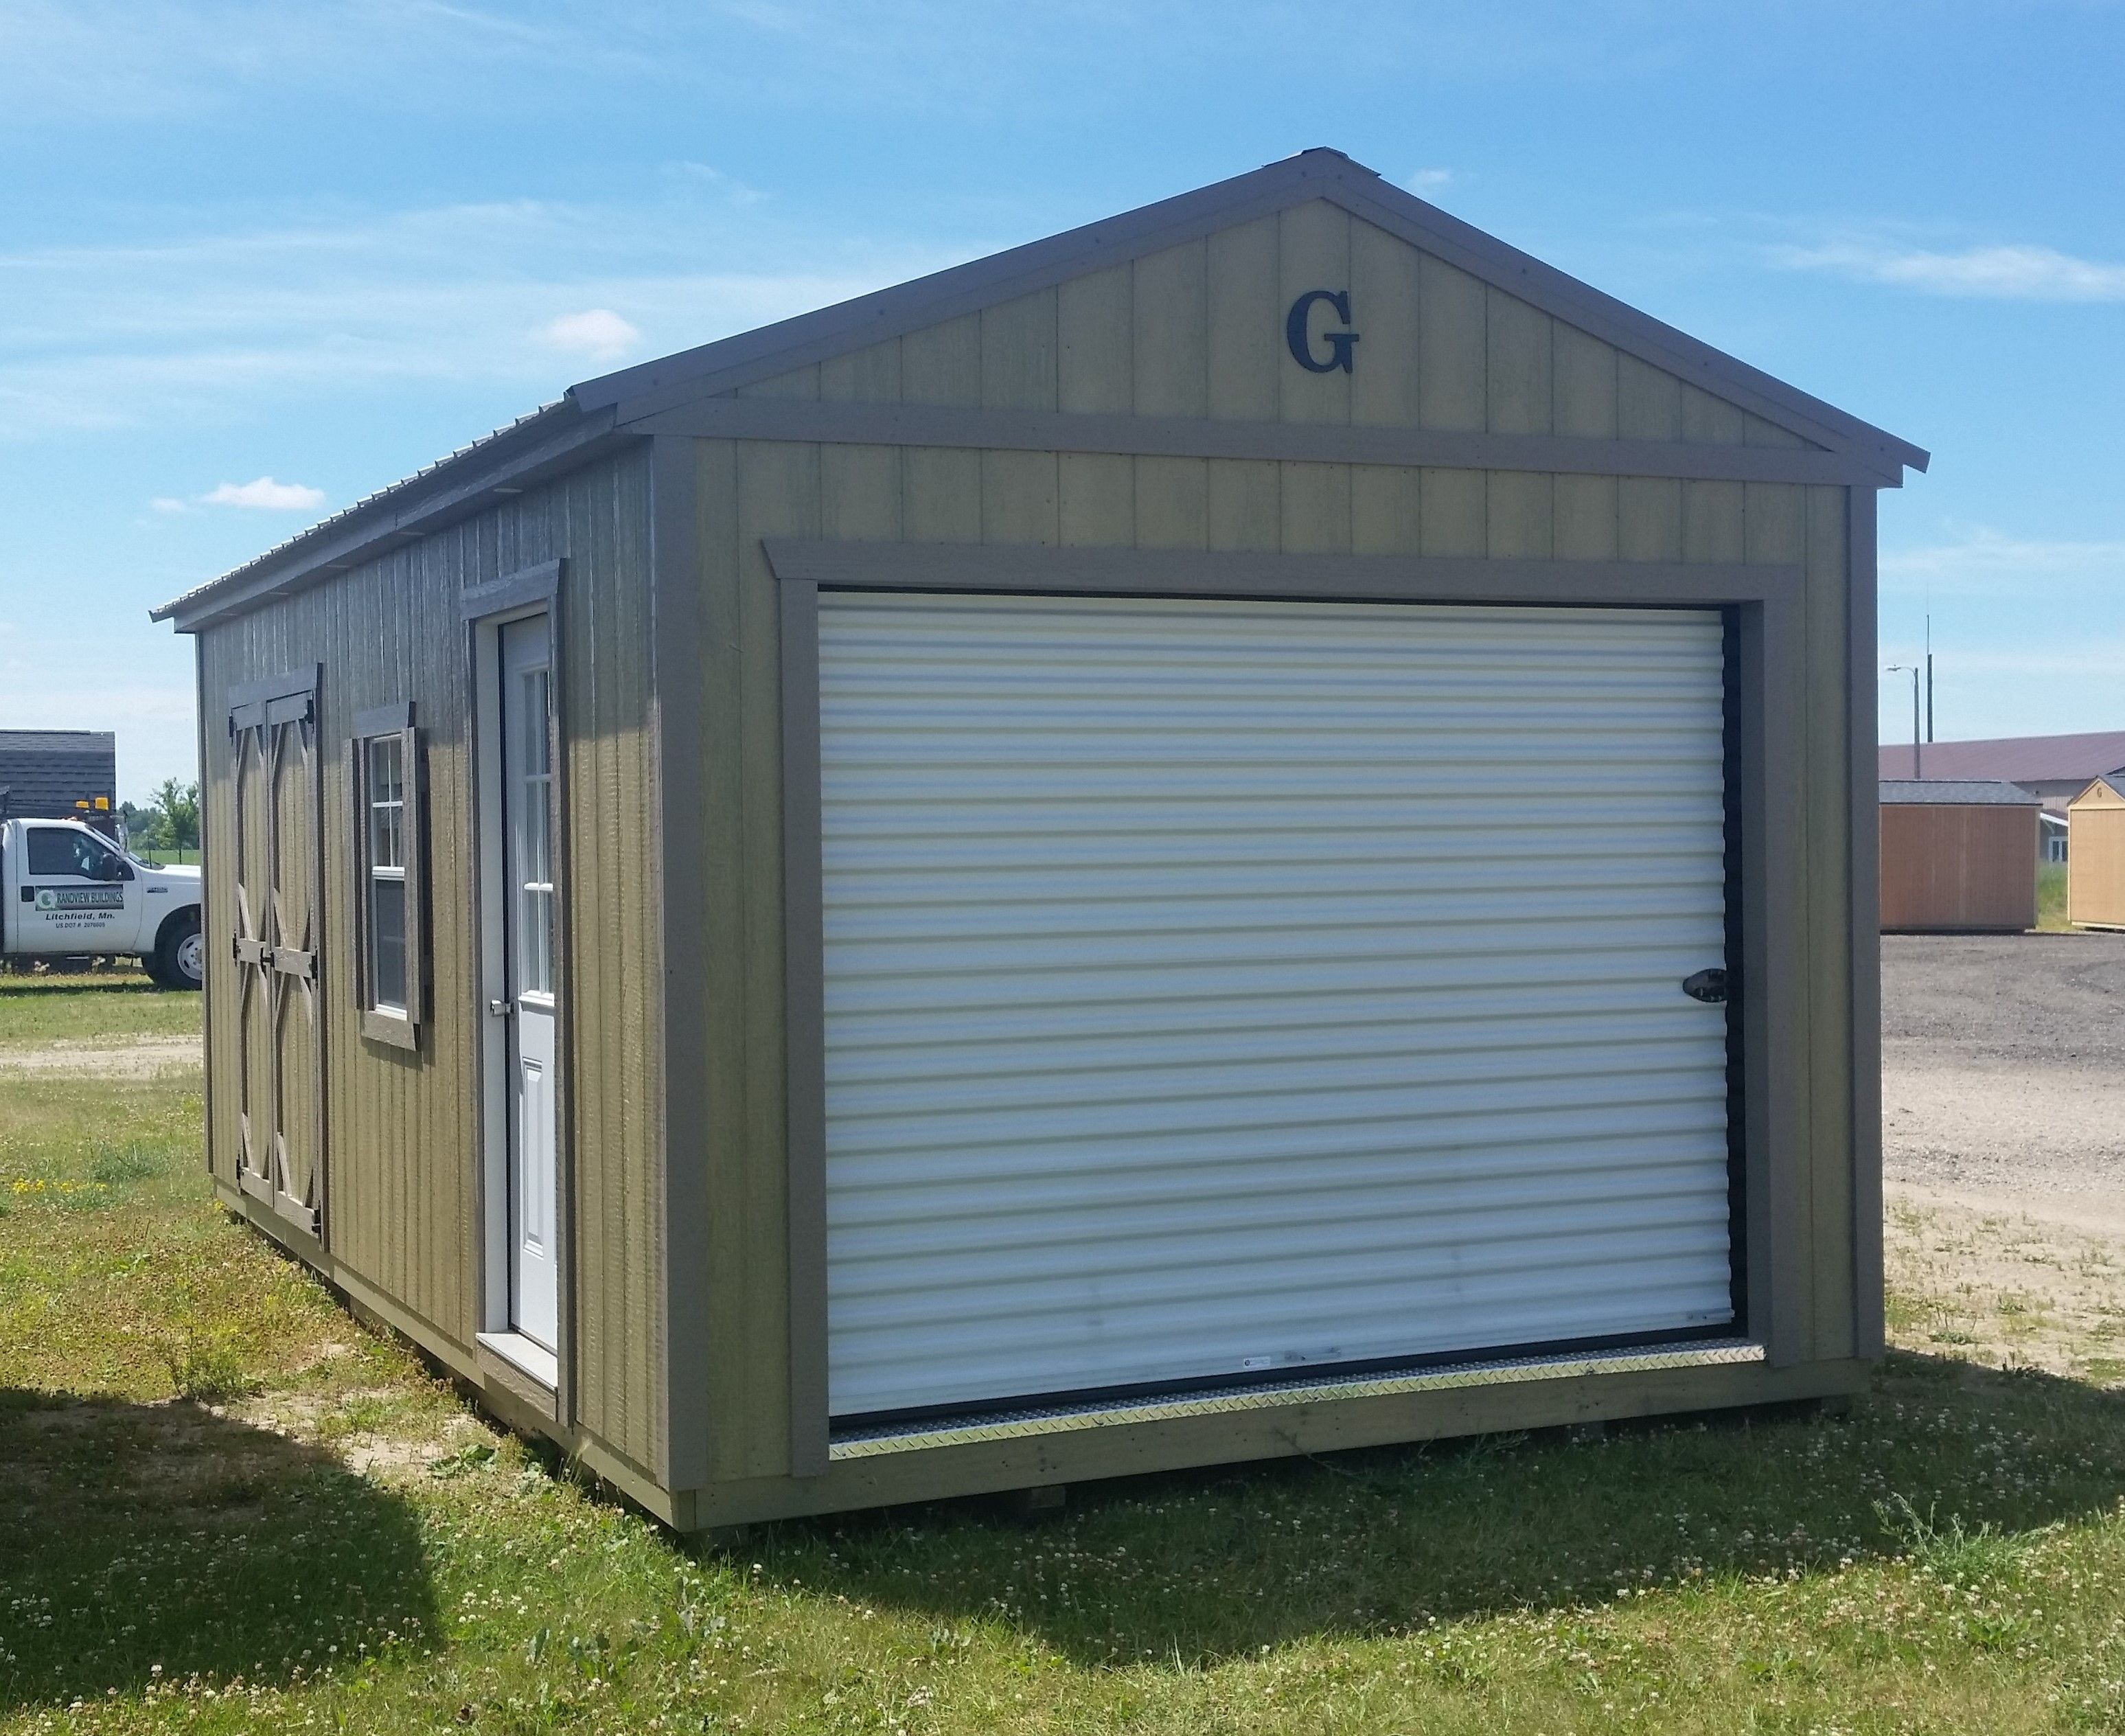 12x24 Garage Buckskin Colored Metal Roof With Matching Trim And Shutters Lp Smartside Siding With Haley Natur Garage Door Styles Portable Garage Metal Roof